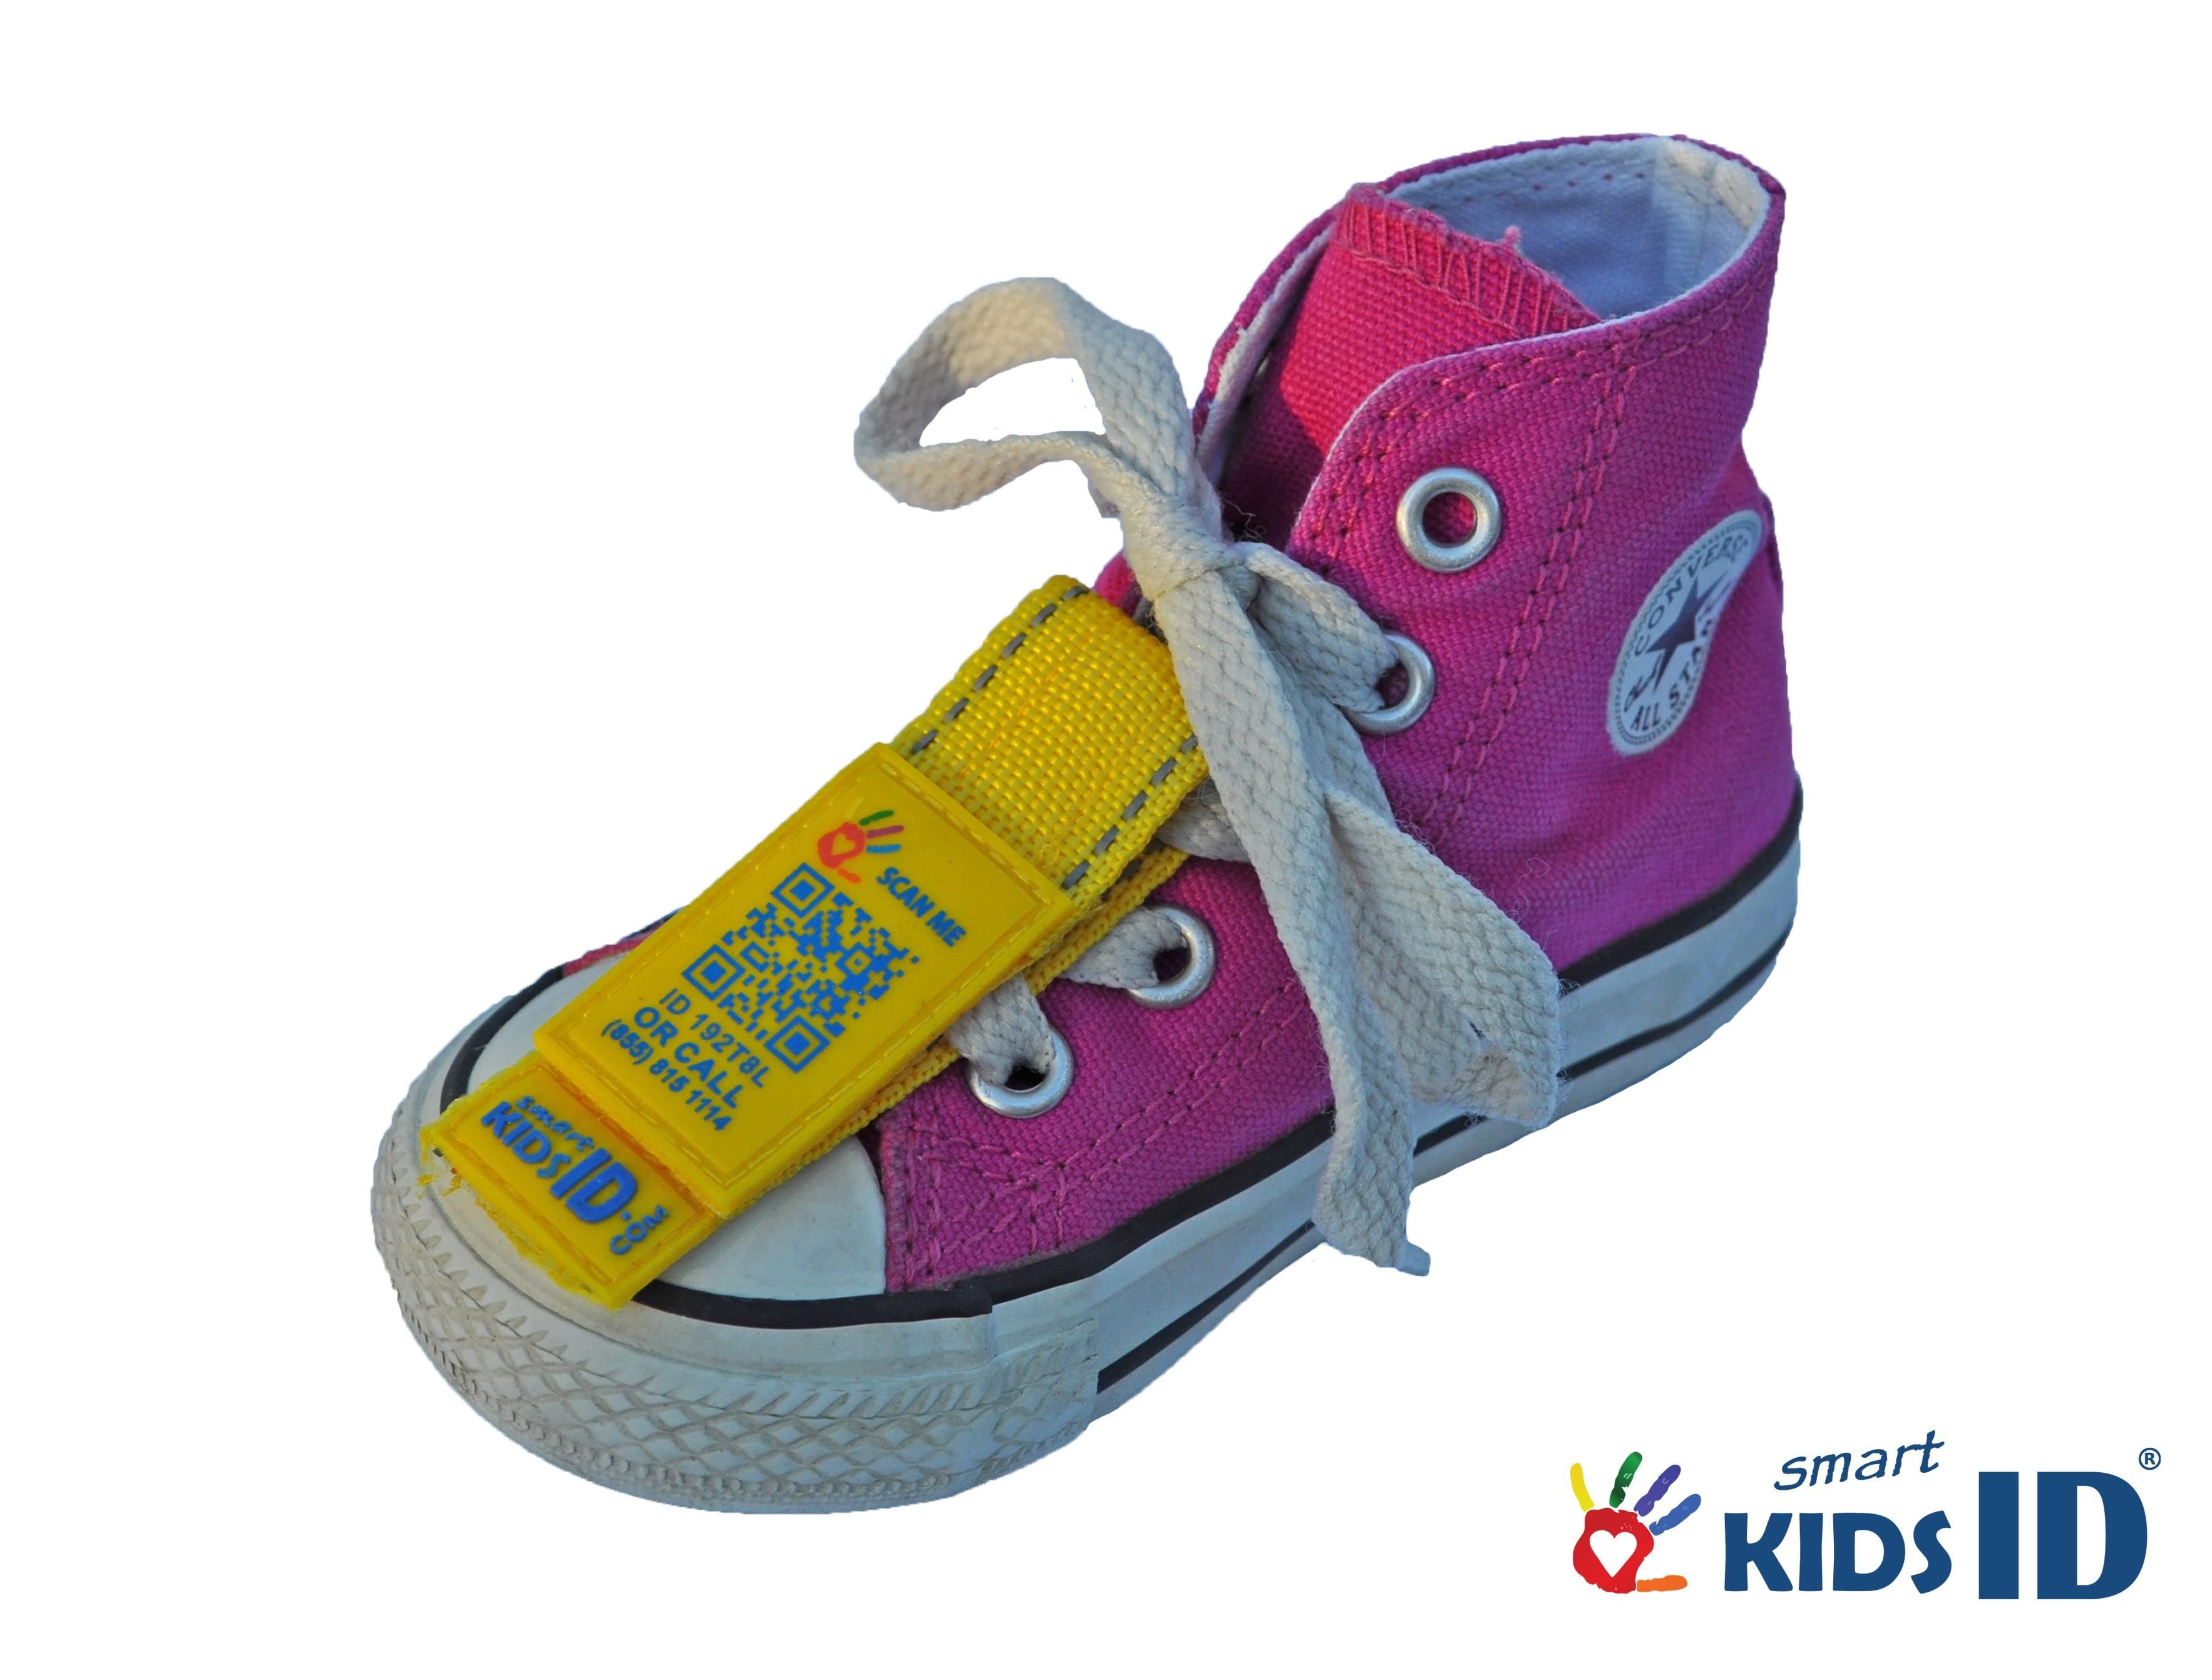 SmartKidsID Shoe ID Tag Yellow Keep your kids safe on the go